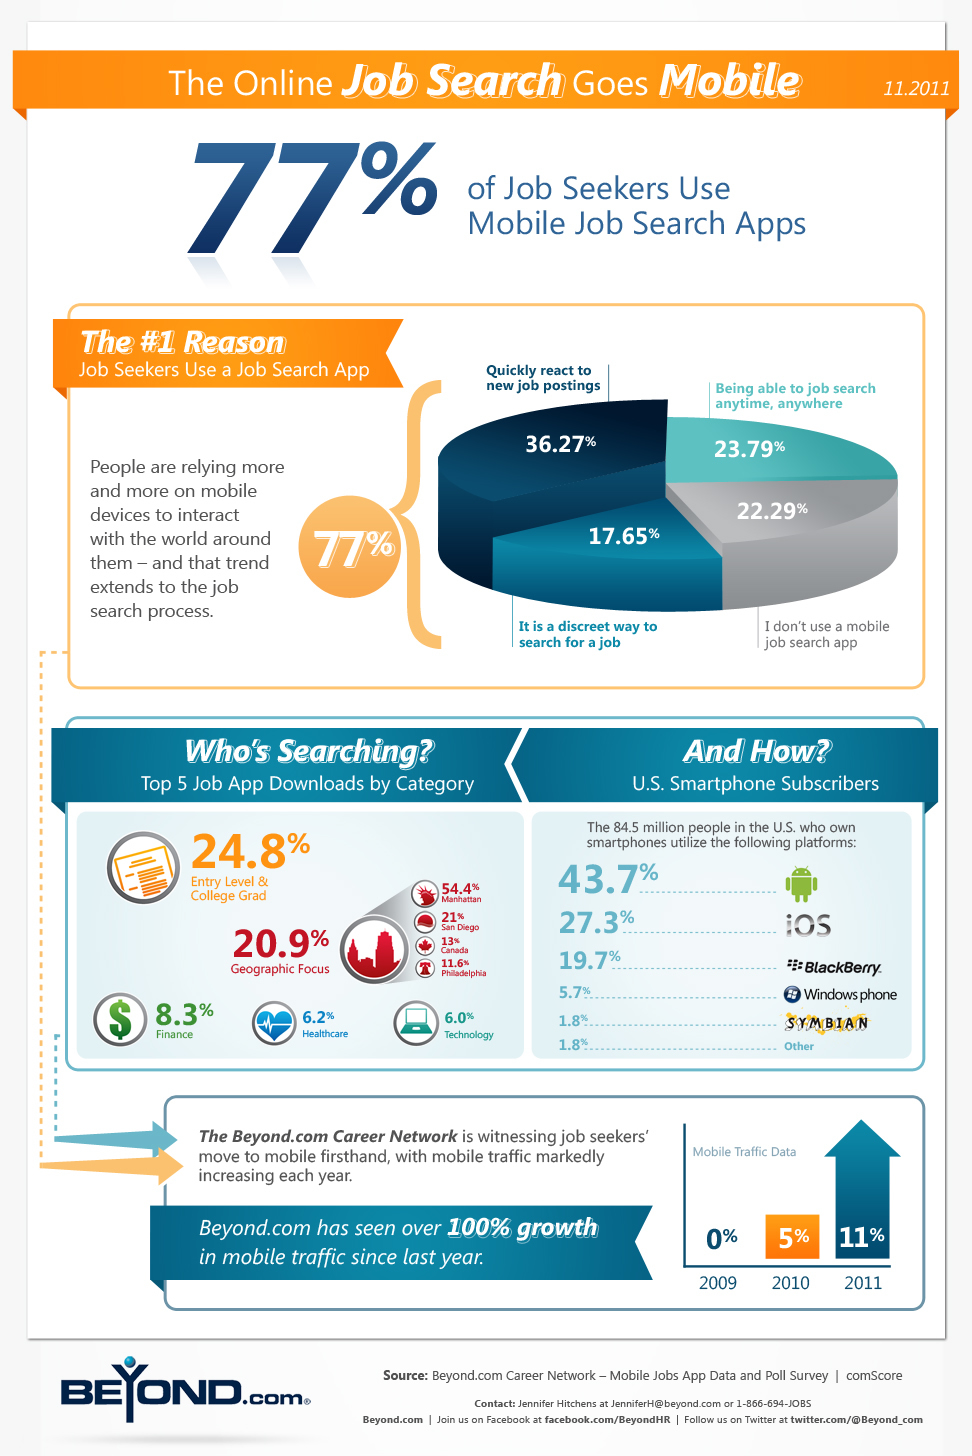 The Online Job Search Goes Mobile Infographic